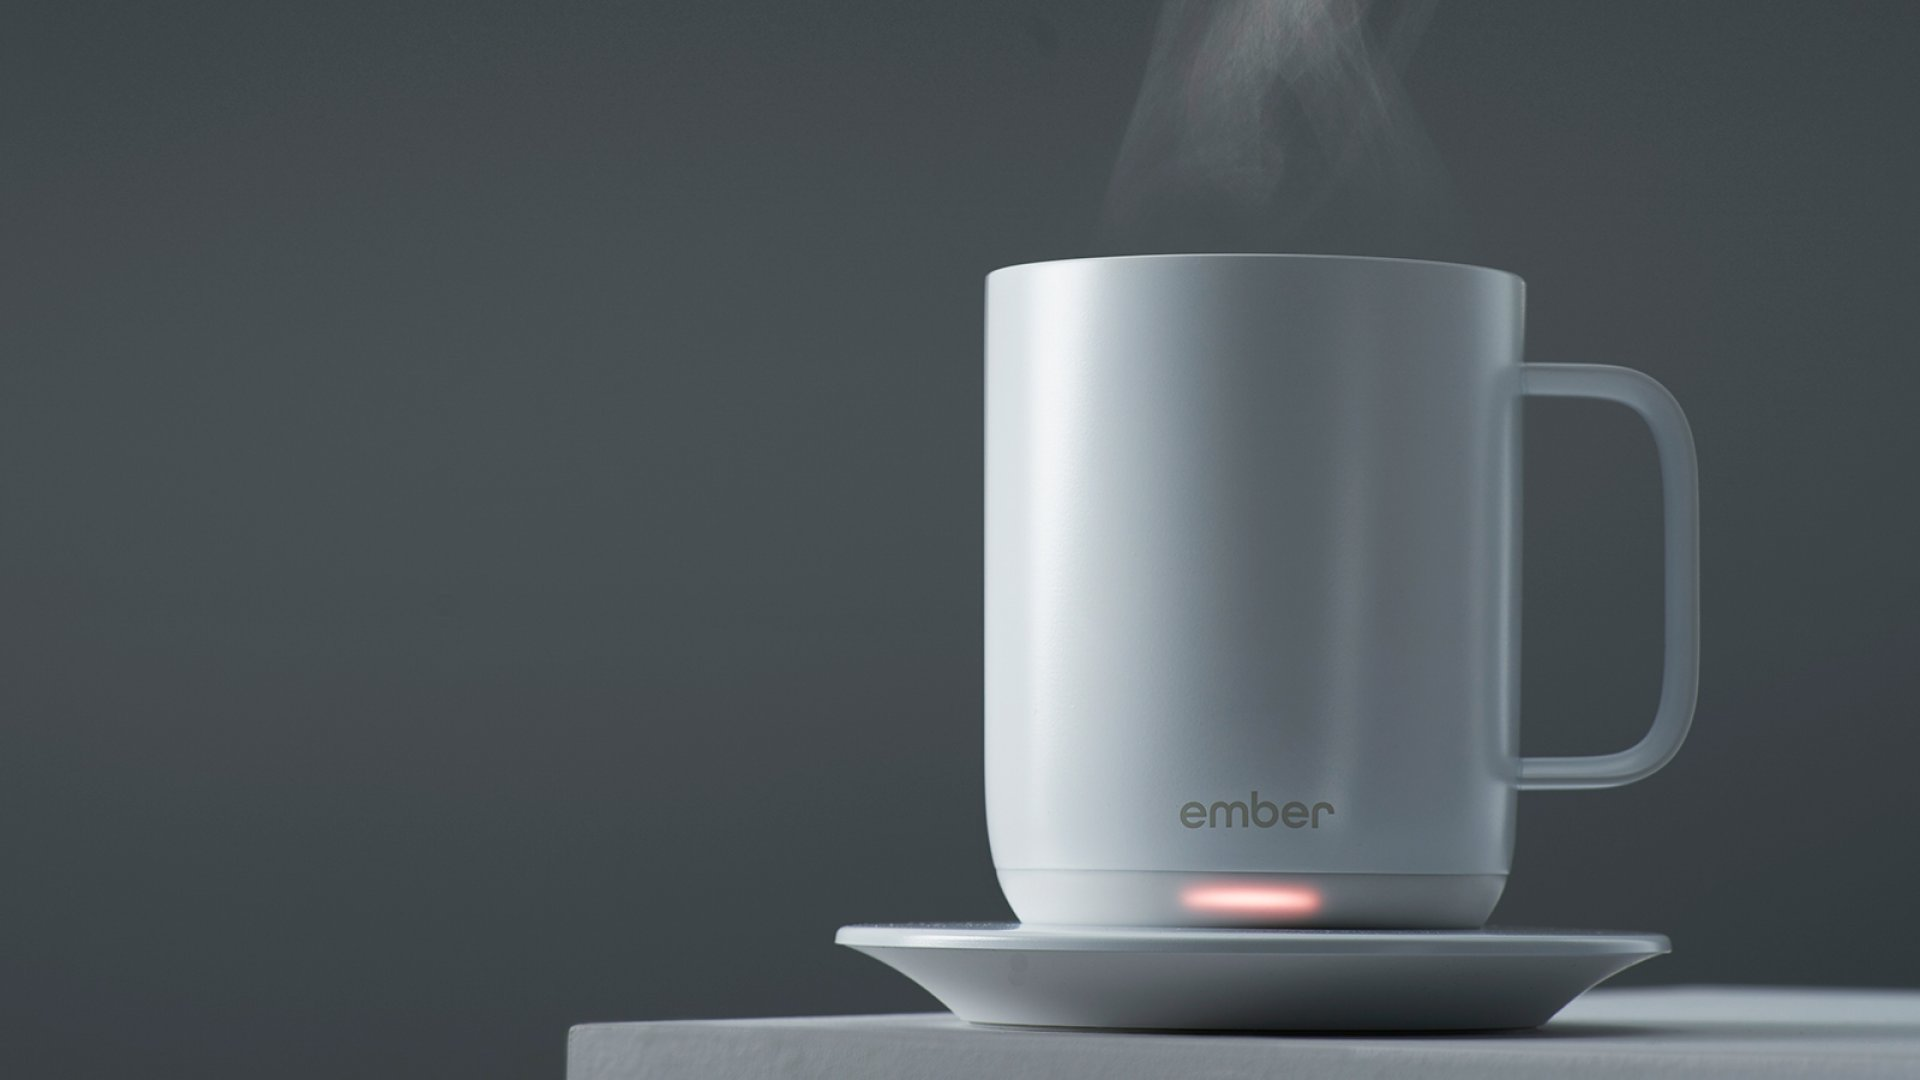 Brace Yourself for This $80 Ceramic Smart Mug, Now Being Sold at Starbucks